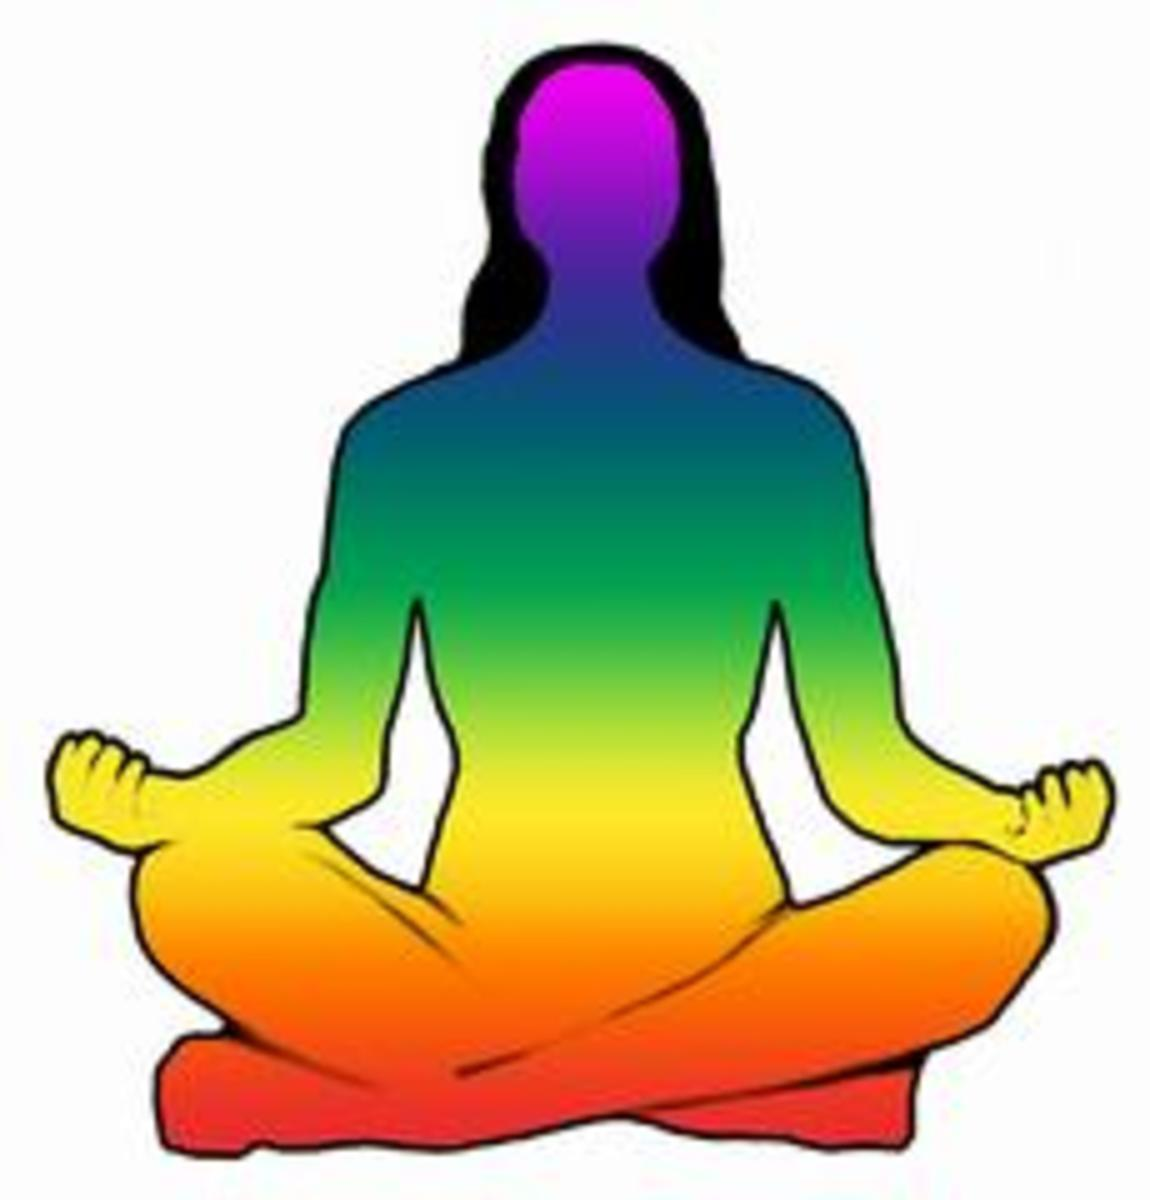 The 7 Chakra Centers in the Human body can be healed and balanced through Mantras